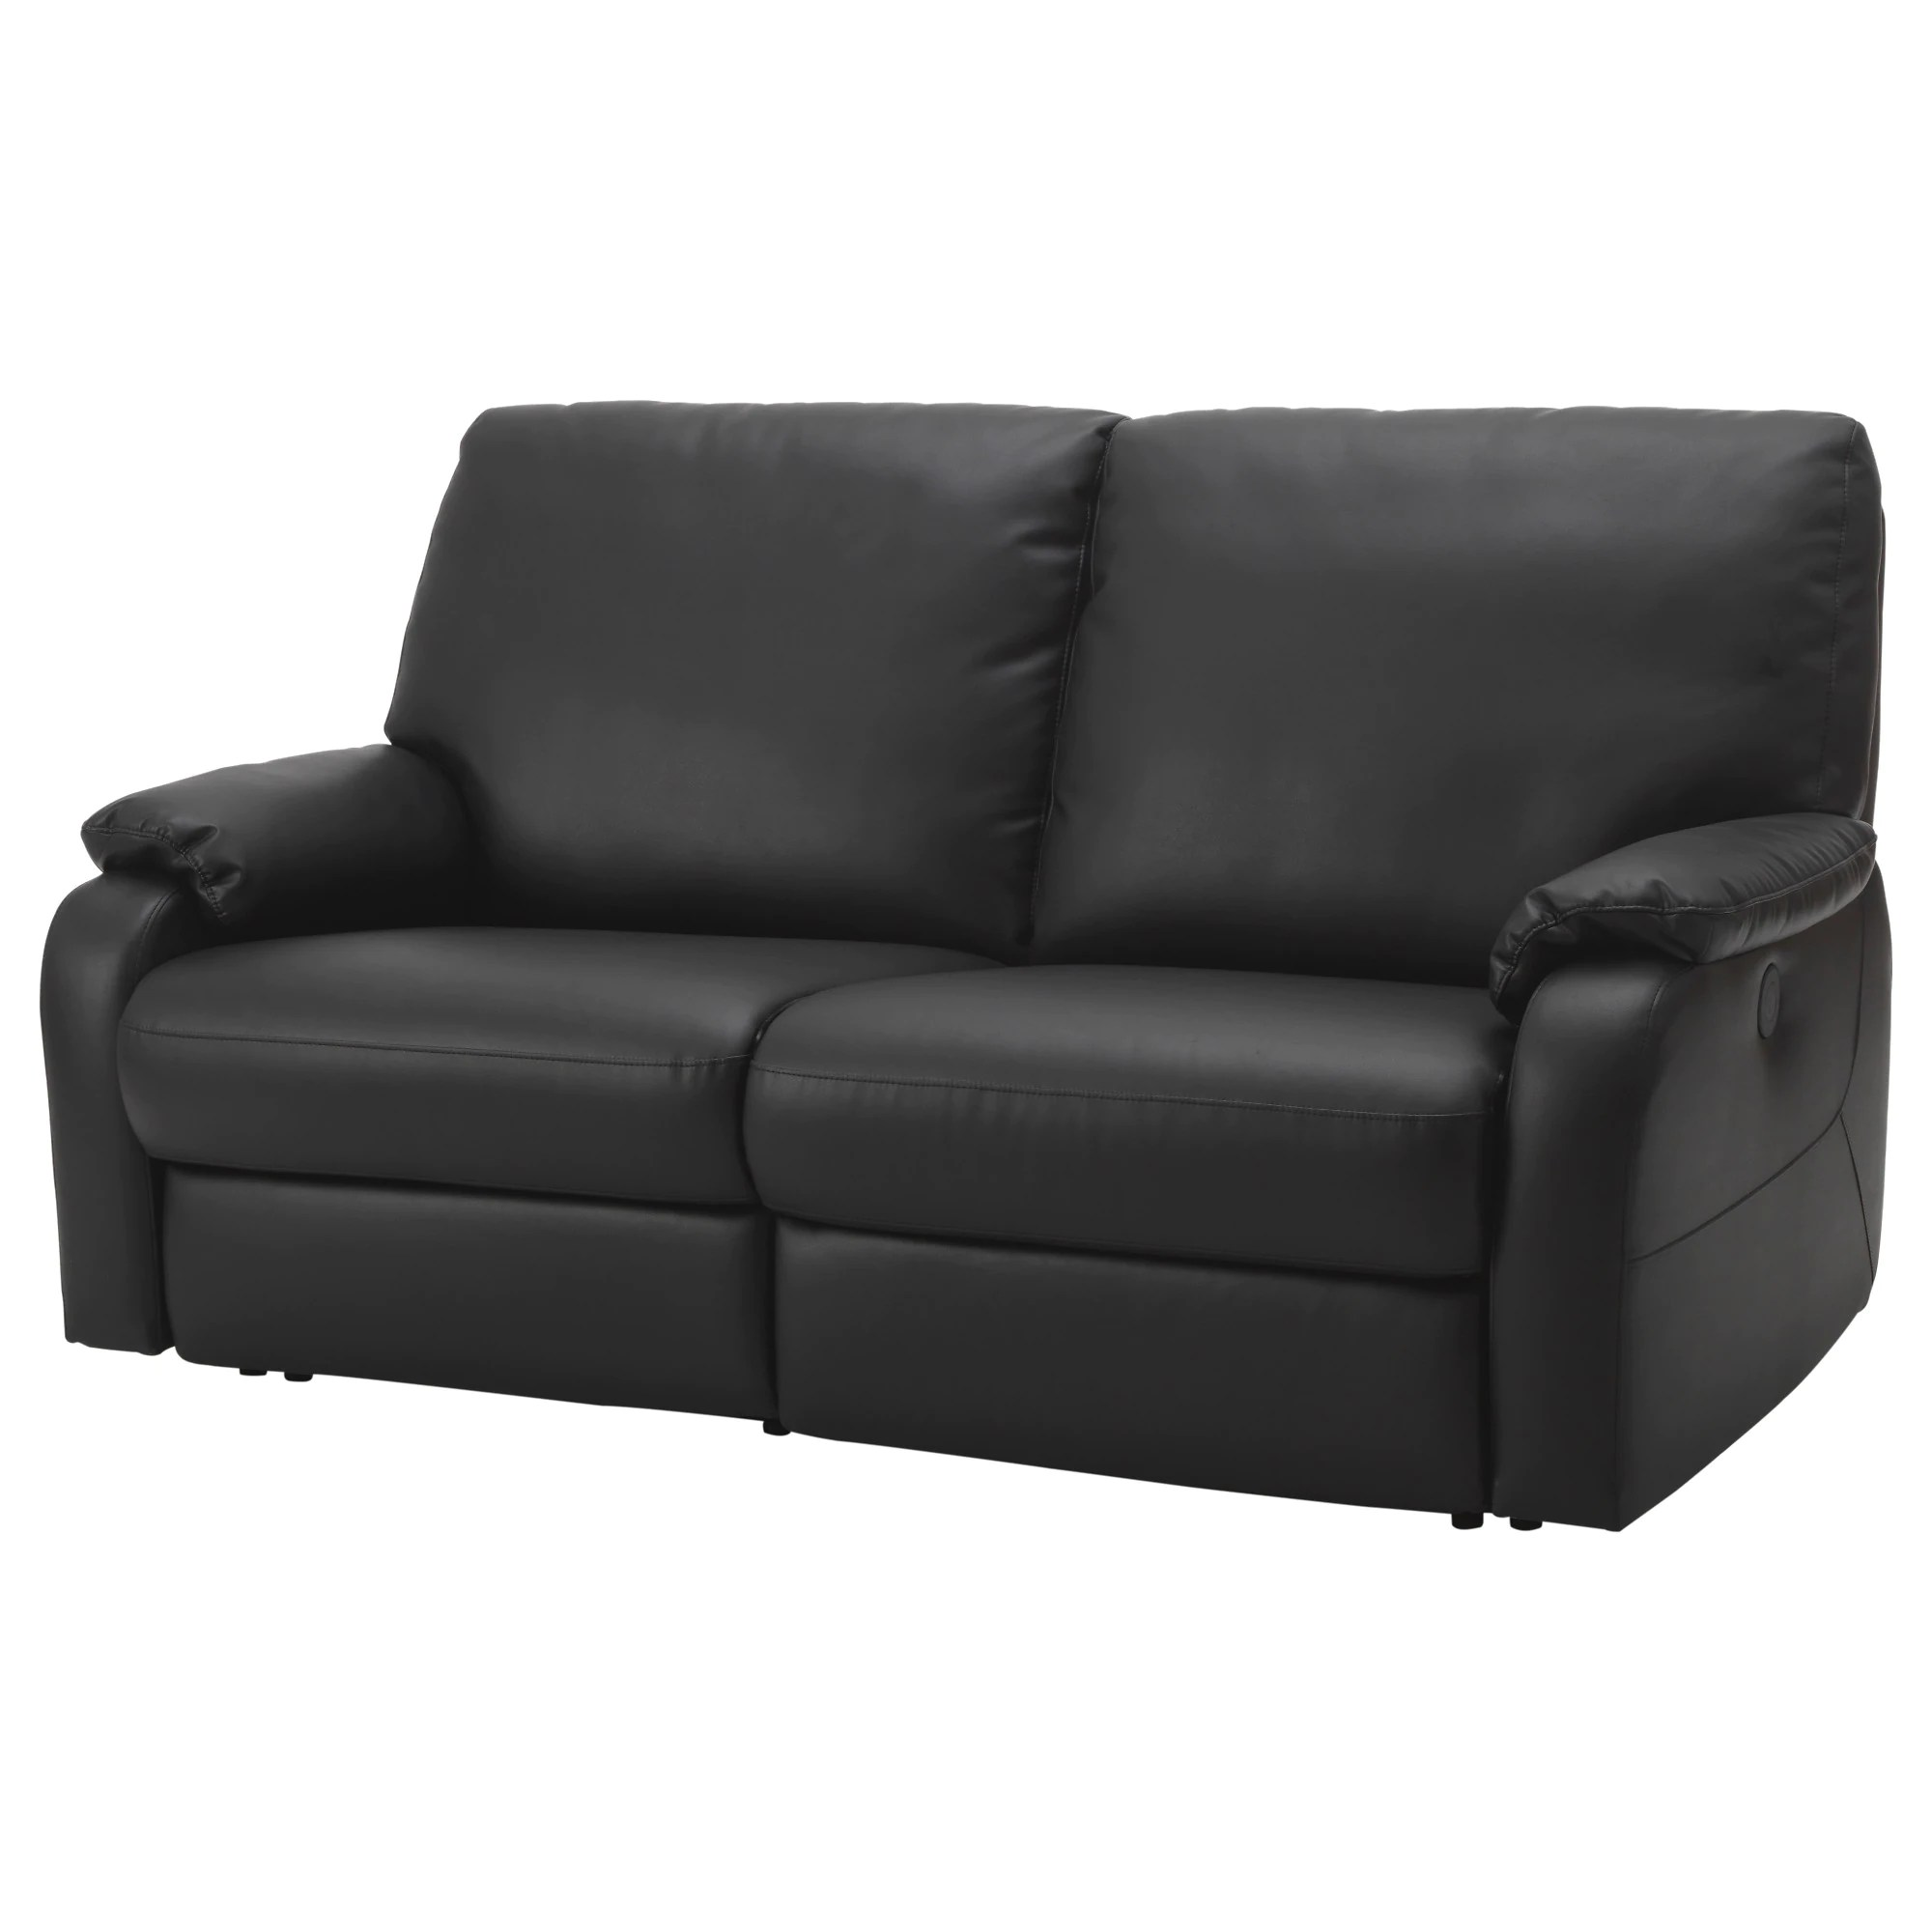 And Sofa TombÄck Sofa With Adjustable Seat Back Kimstad Black